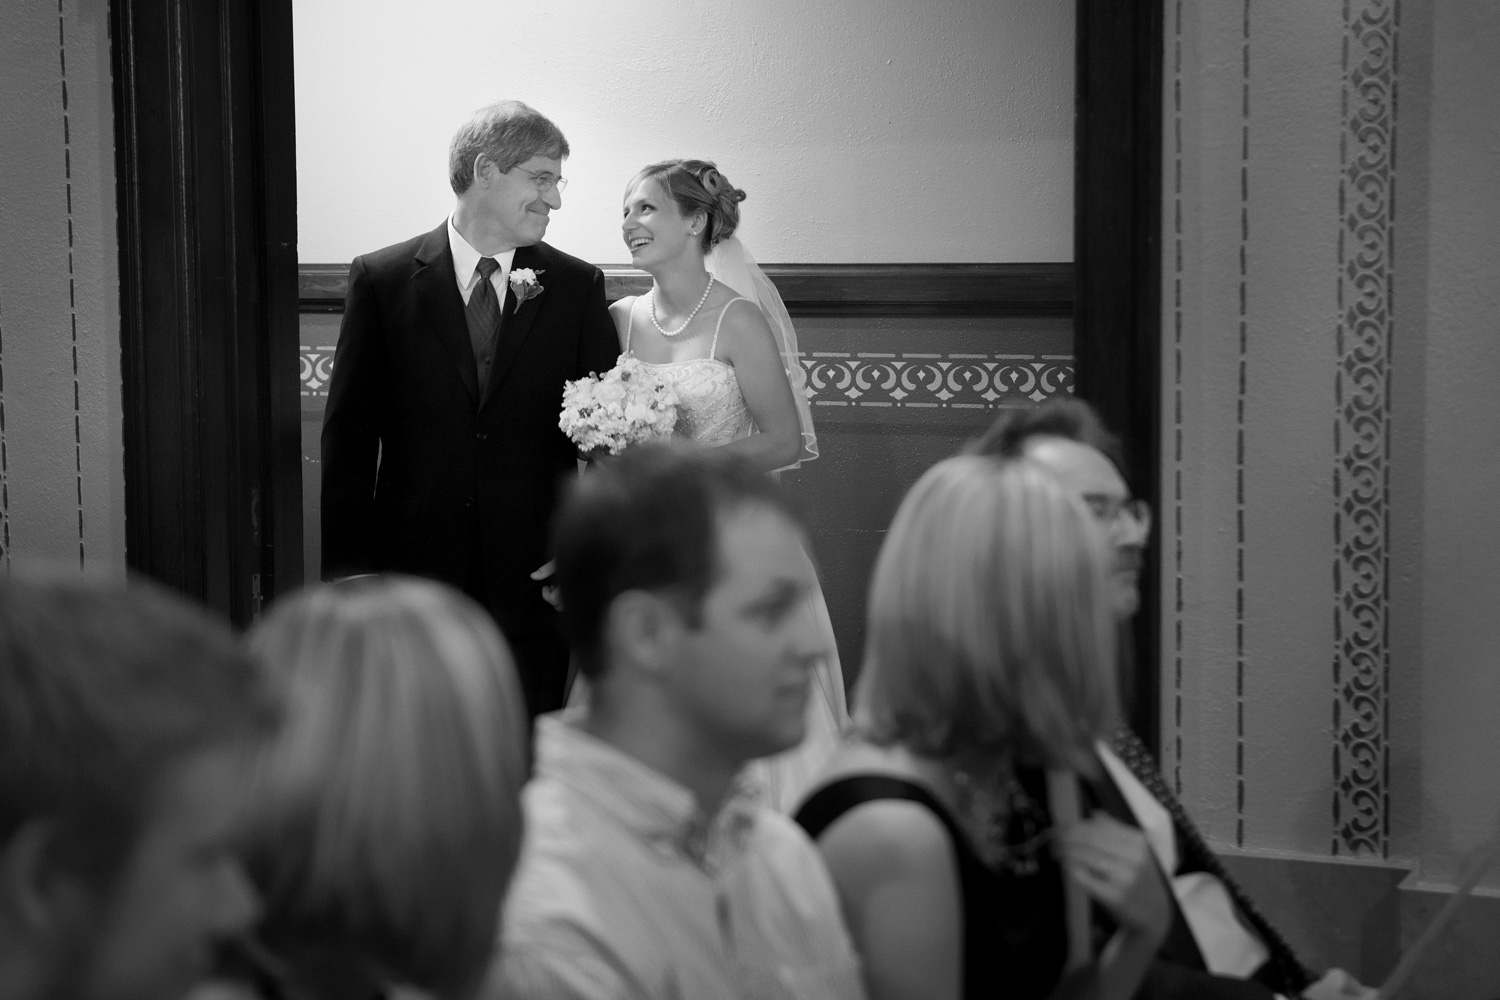 wedding-photography-minneapolis-mark-kegans-428.jpg